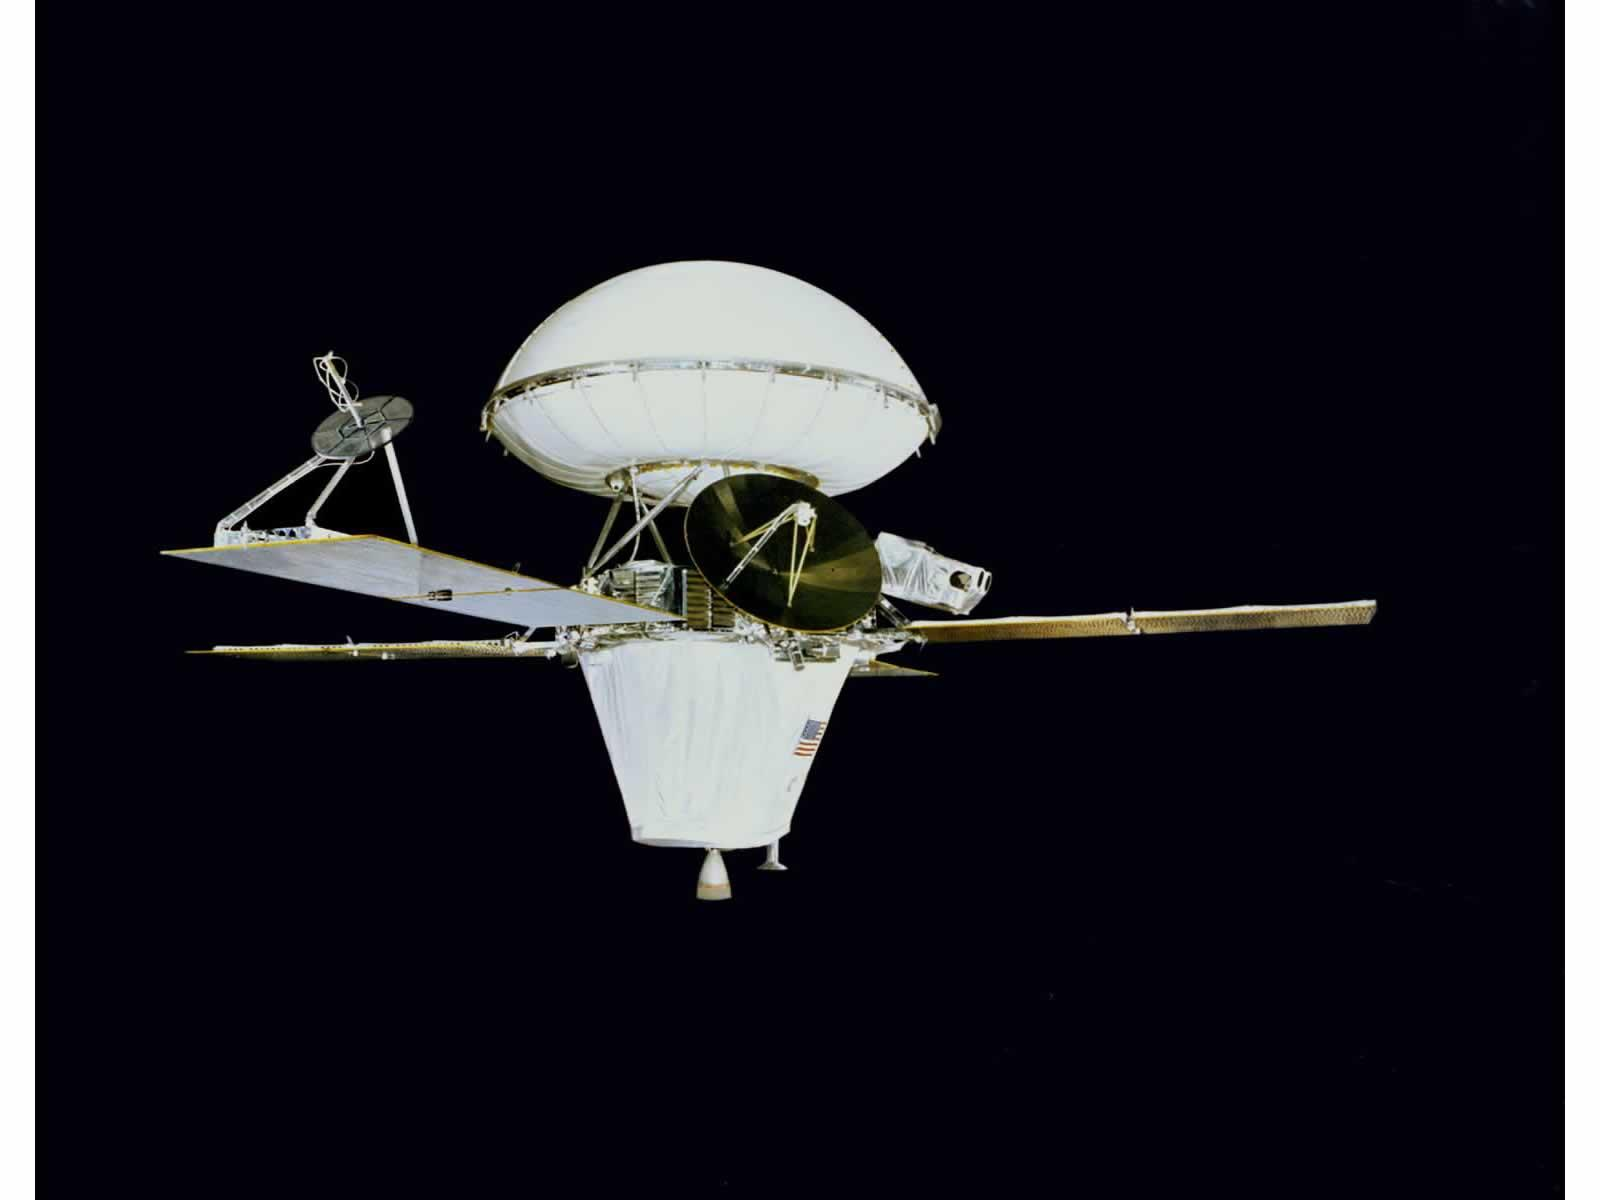 viking space probes all - photo #4